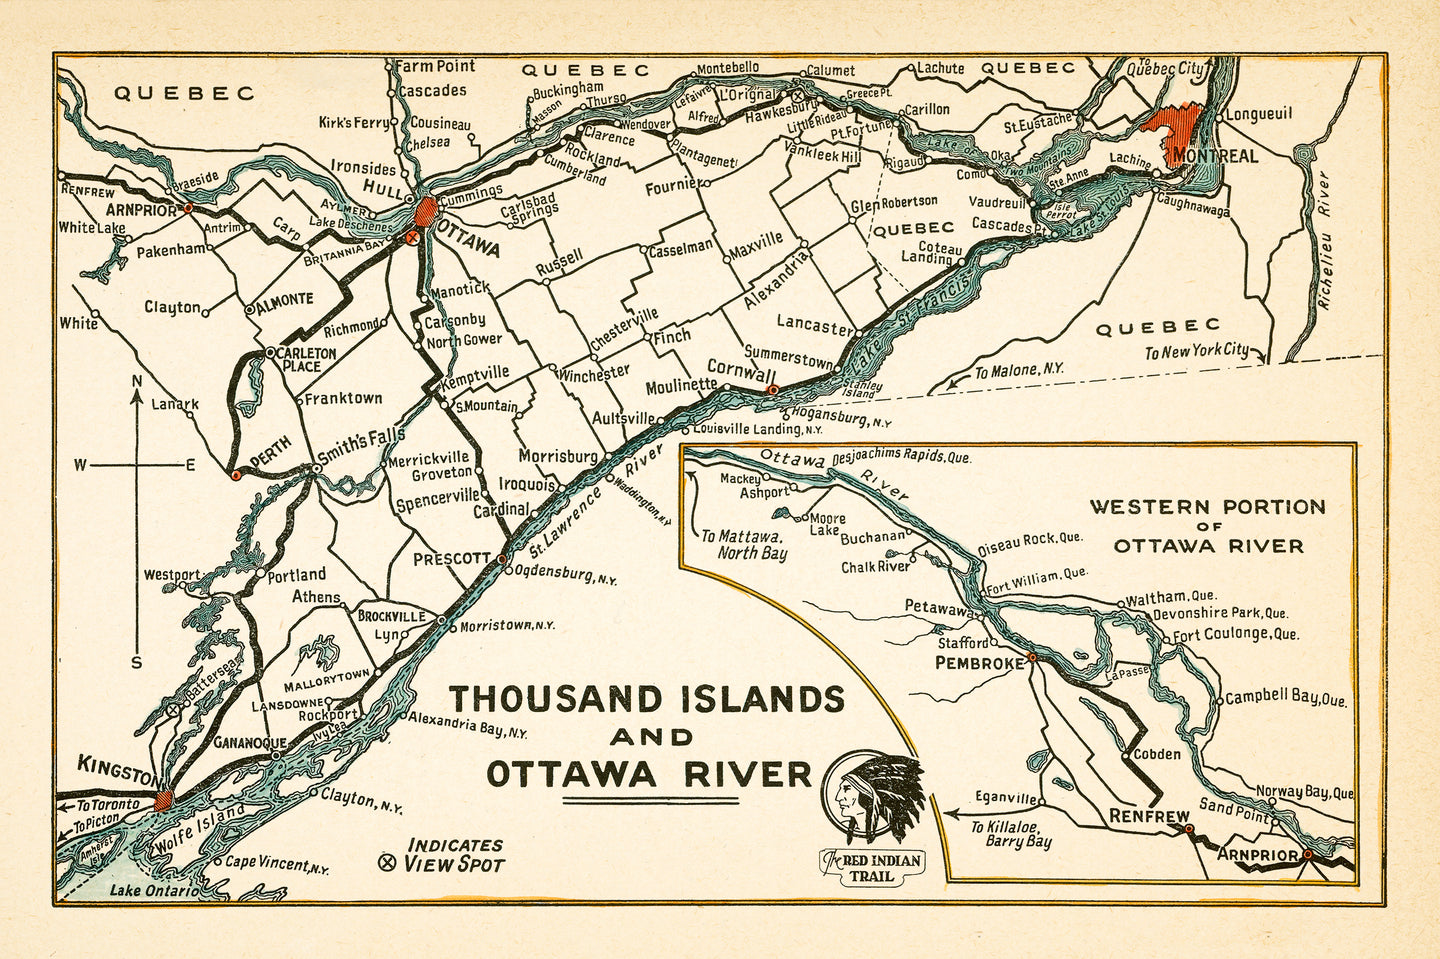 Red Indian Trail - Thousand Islands & Ottawa River